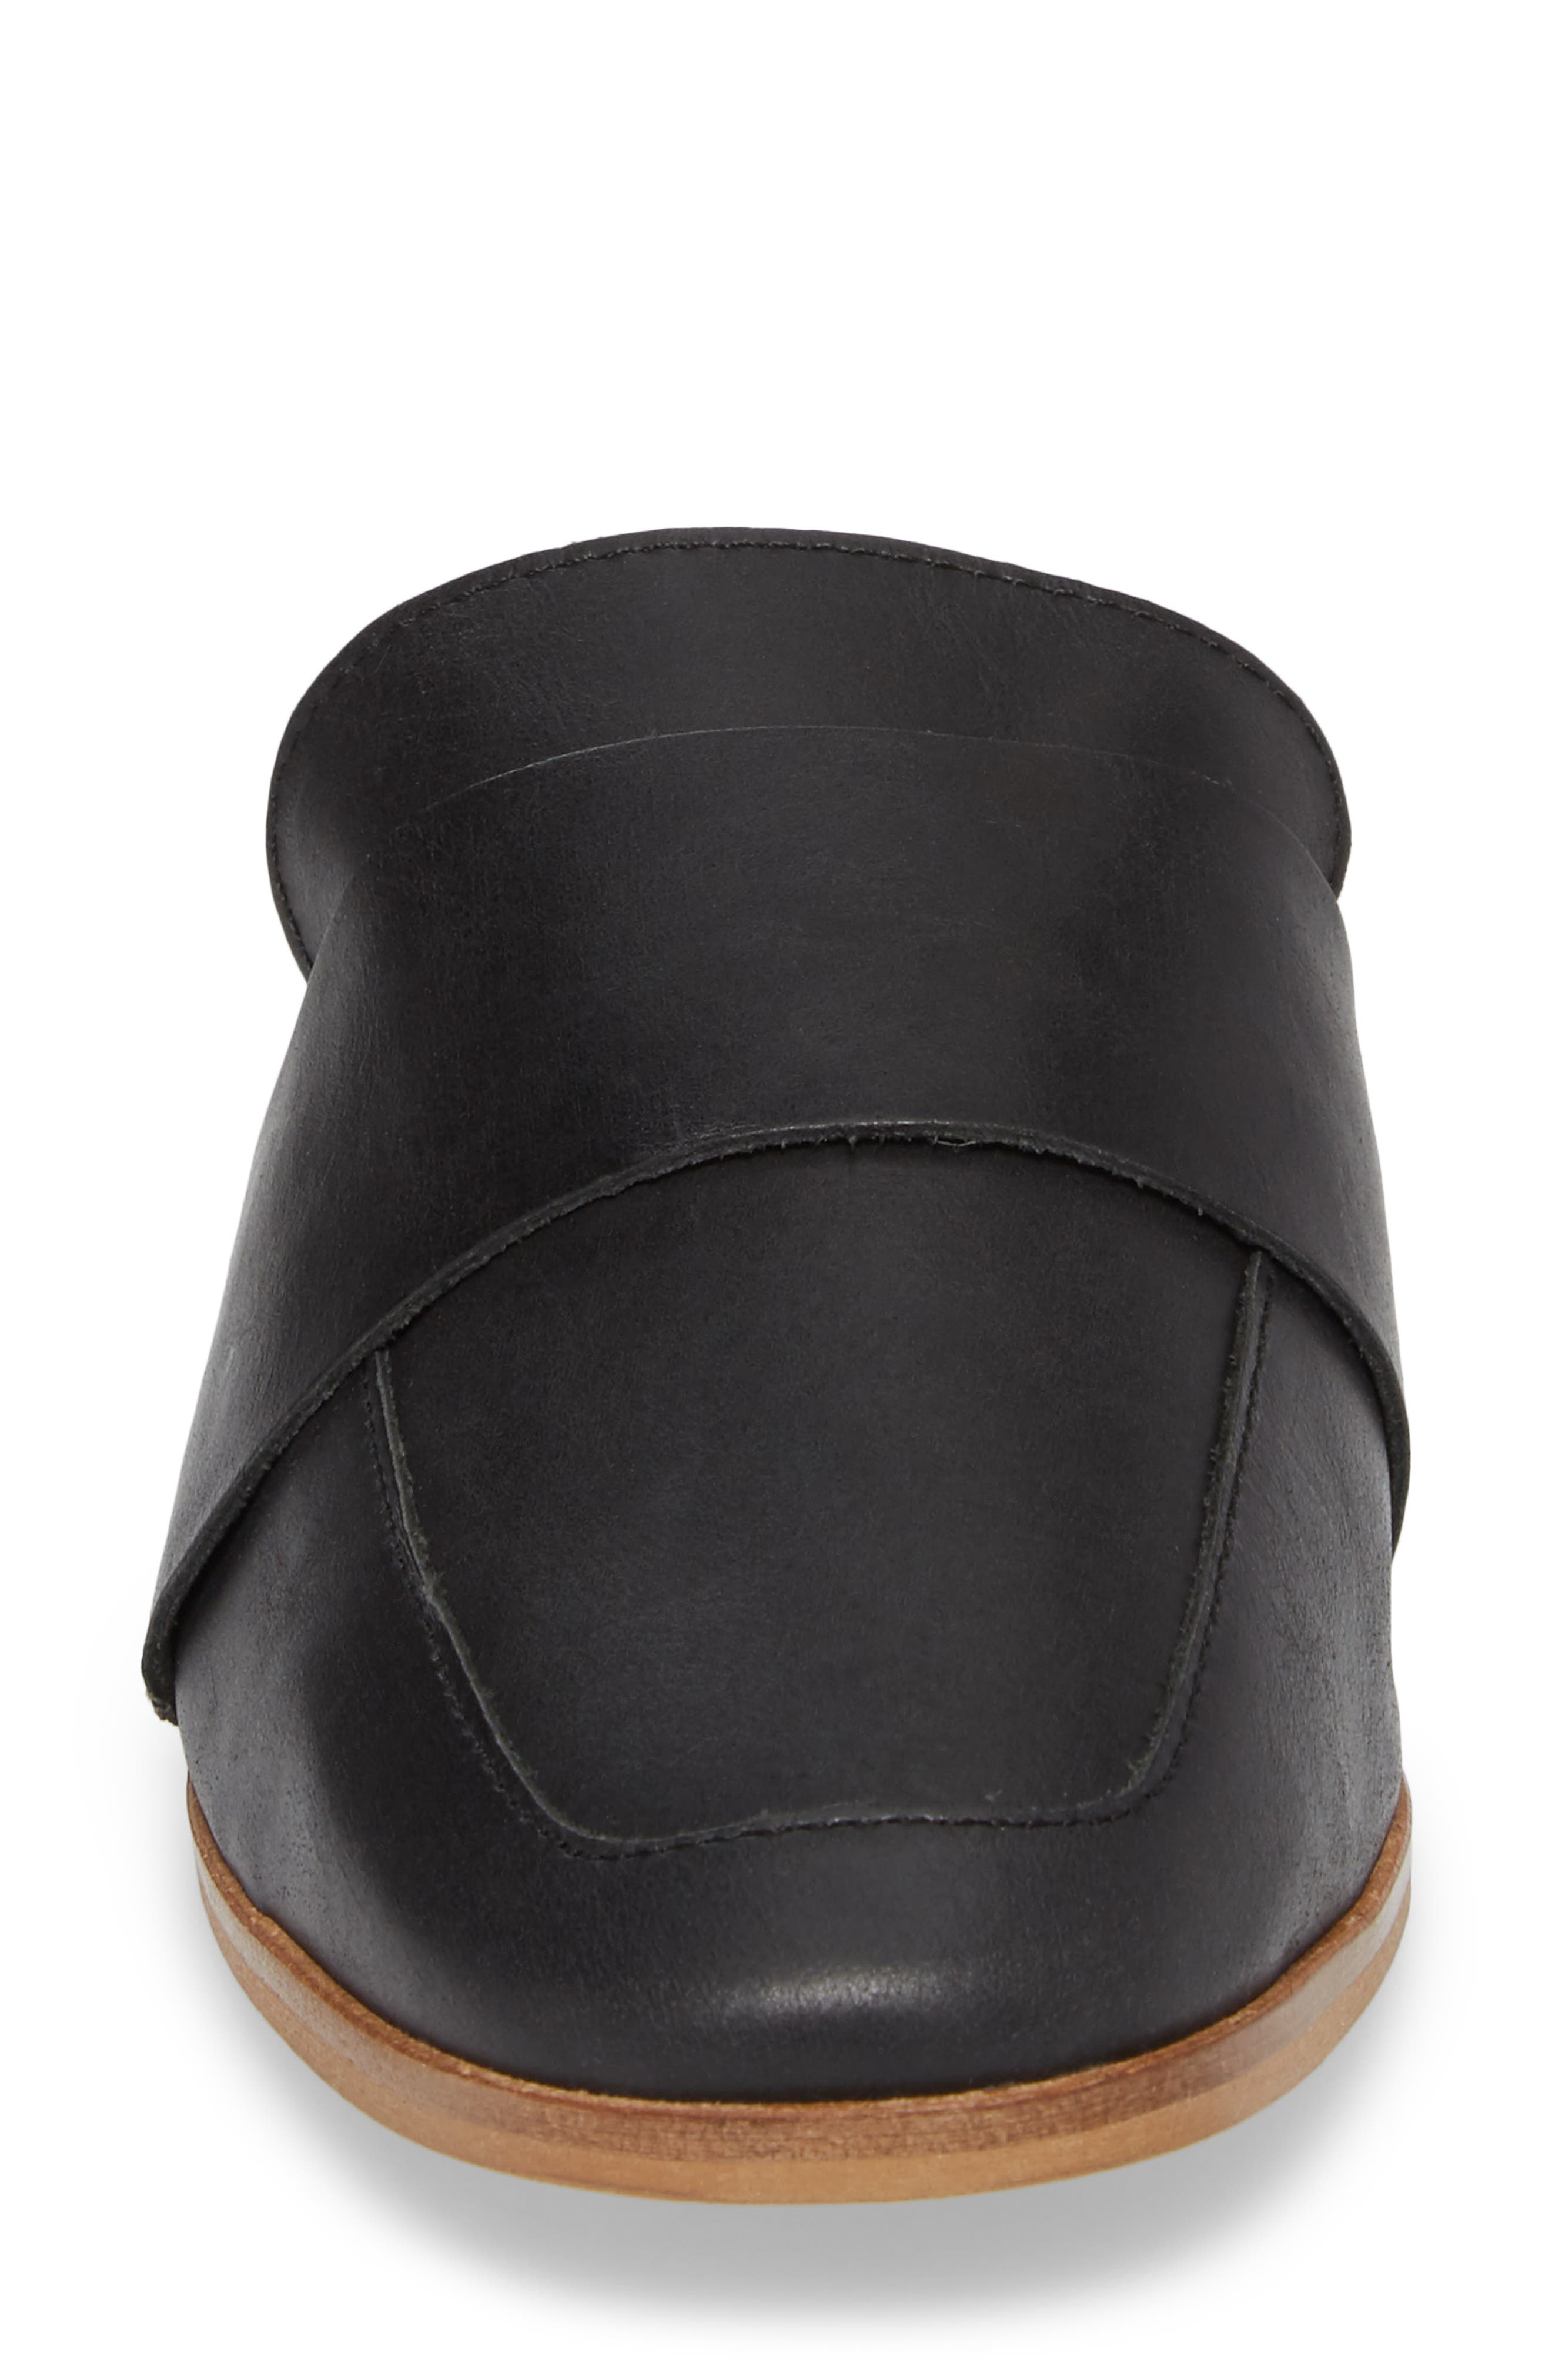 At Ease Loafer Mule,                             Alternate thumbnail 4, color,                             CARBON LEATHER